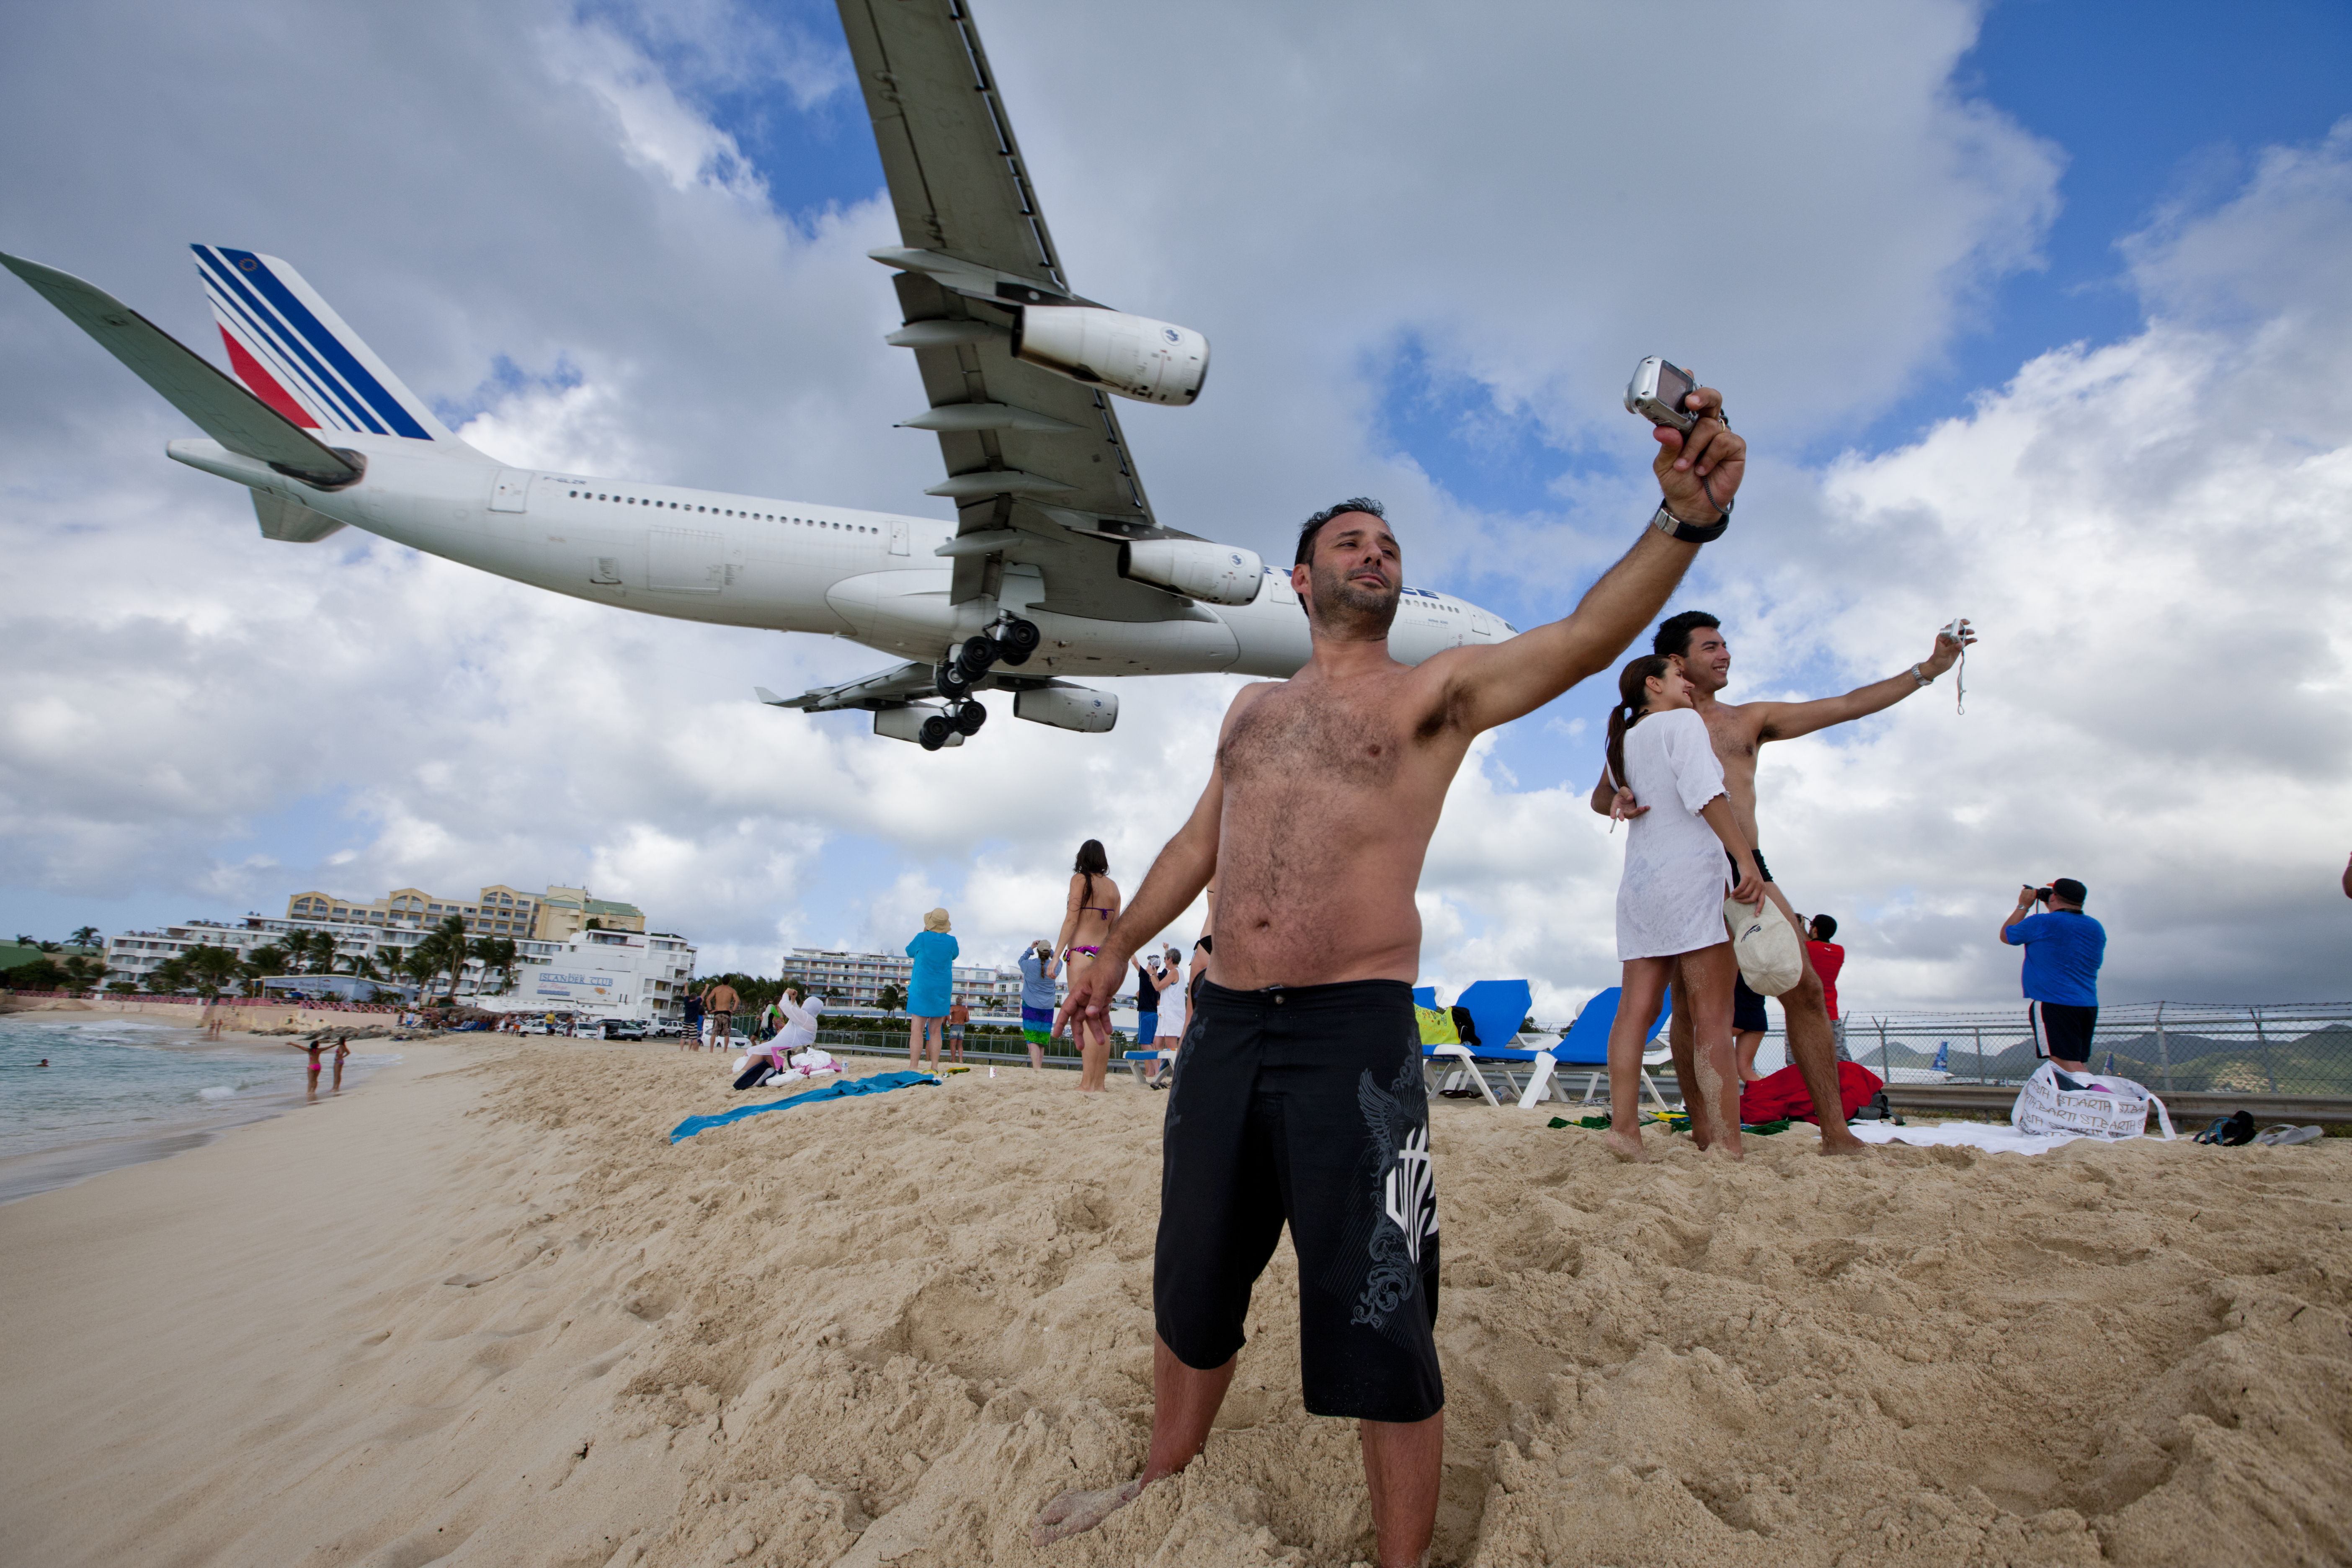 Going to Maho Beach? Please Step Away from the Runway